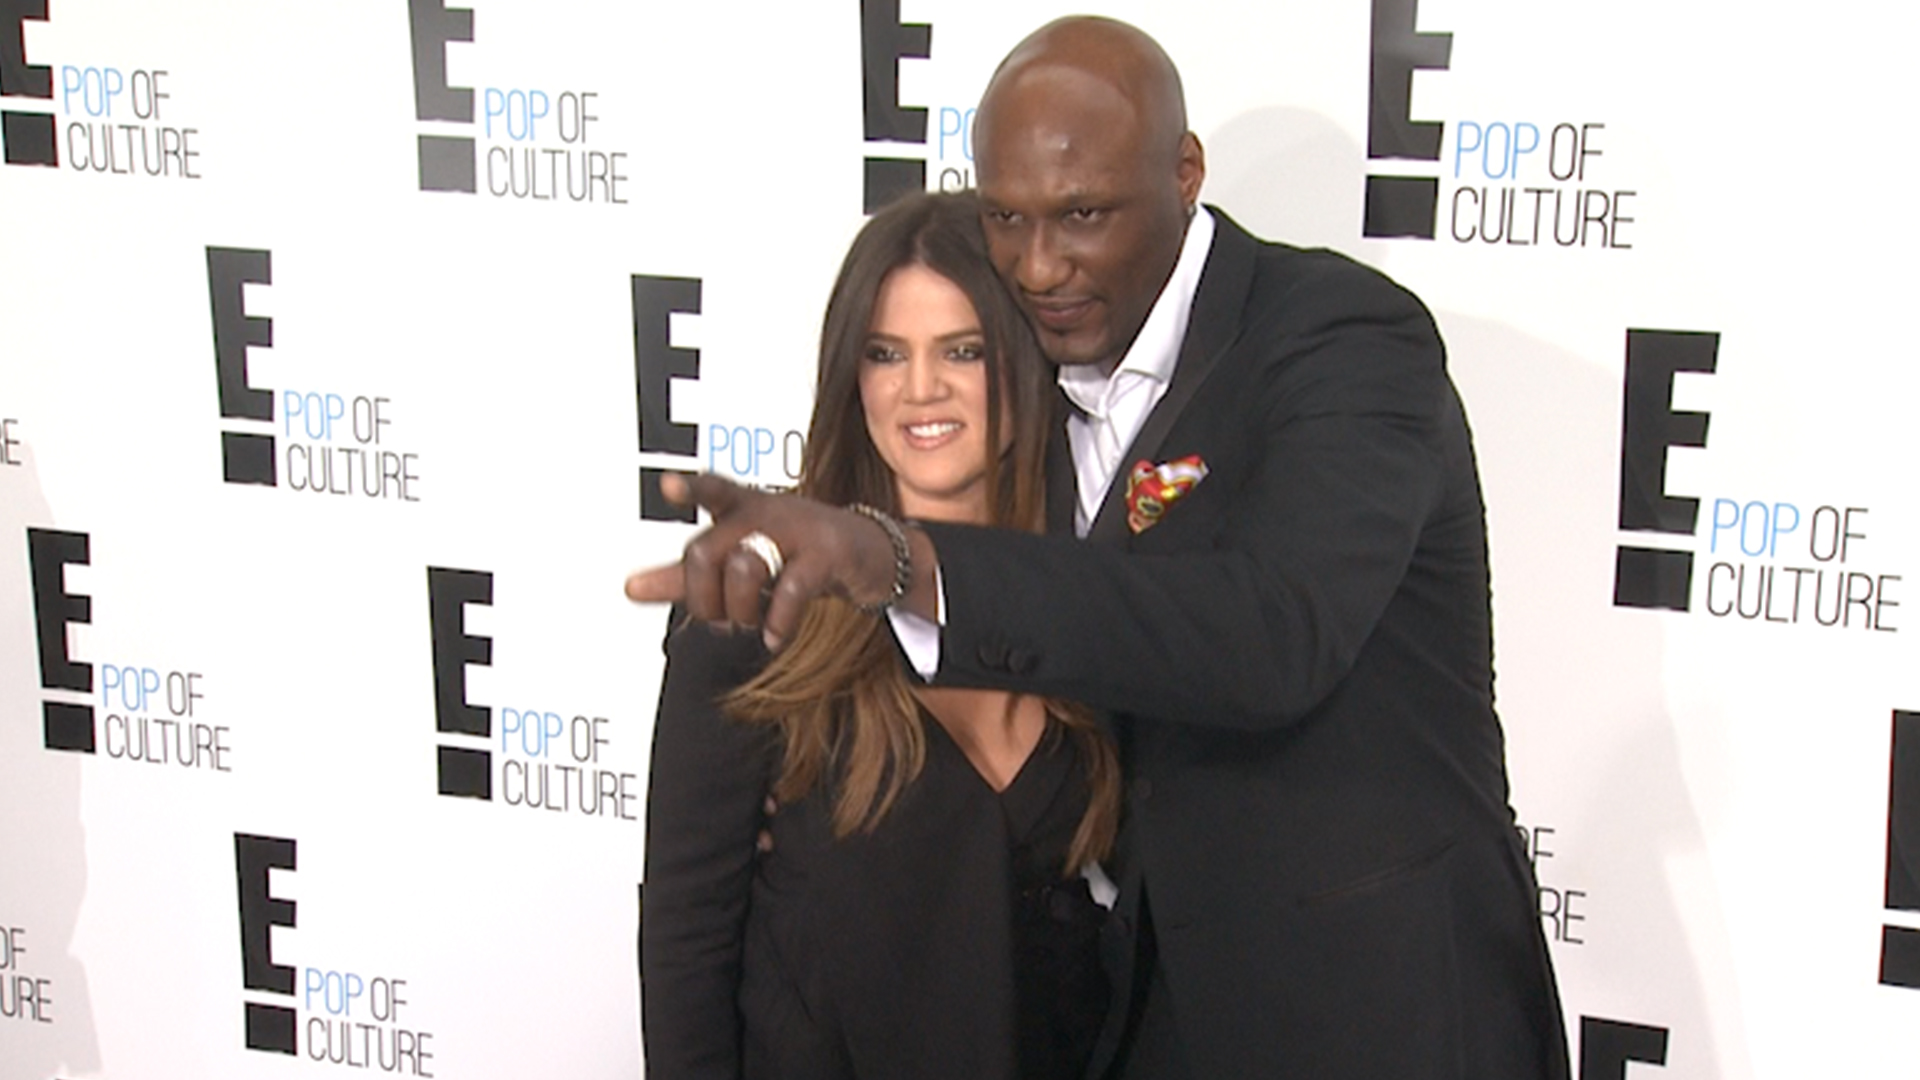 Khloé Kardashian Plans to File for Divorce from Lamar Odom Again: 'She Doesn't Agree with His Choices,' Says Source